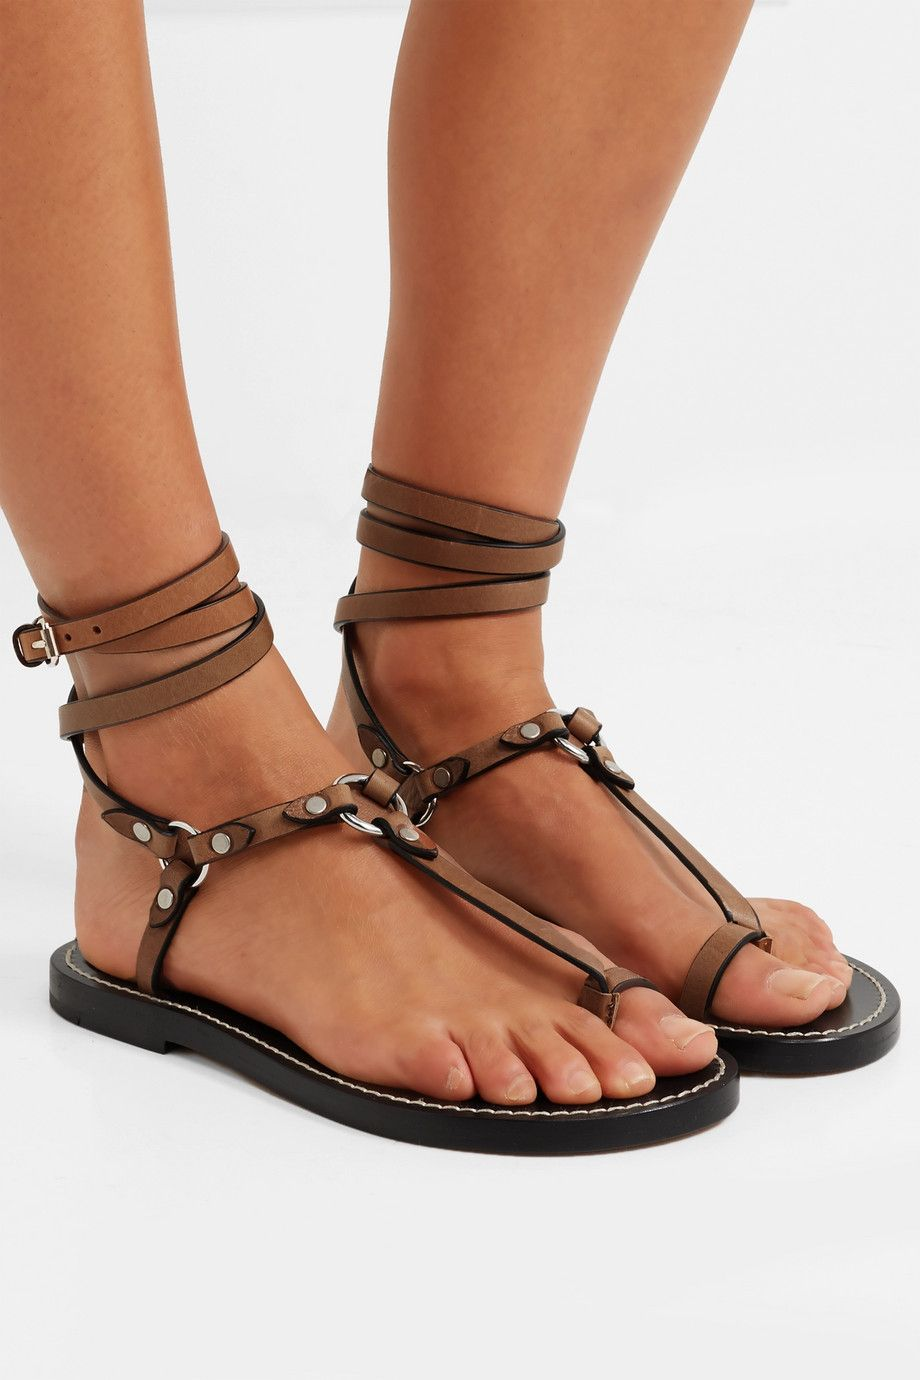 Big Discount Cheap Price Low Price Sale Isabel Marant Joxxy leather sandals Low Cost Cheap Sale Websites Cheap Sale Best Sale MsV6y8